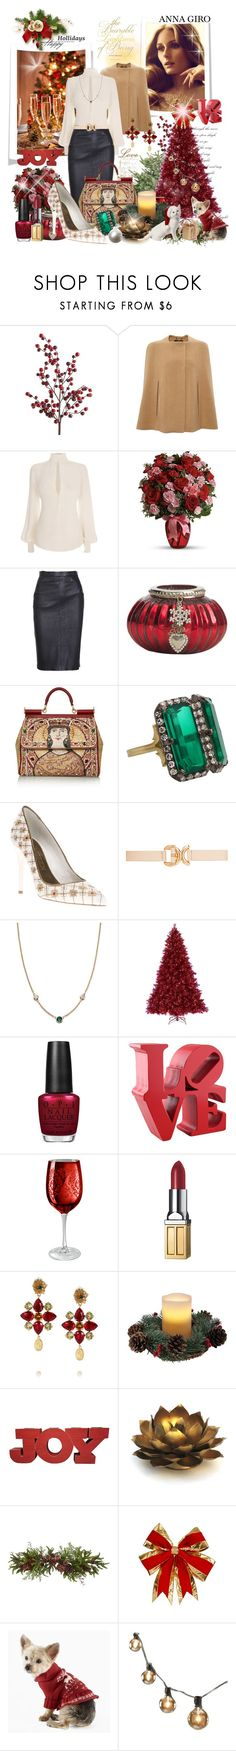 Merry Christmas and Happy Holidays to all my followers and to each and every creative polyvore user by annagiro on Polyvore featuring moda, Alexander McQueen, Derek Lam, Dolce&Gabbana, Sylva & Cie, Elsa Peretti, Forever New, Elizabeth Arden, OPI and Lene Bjerre